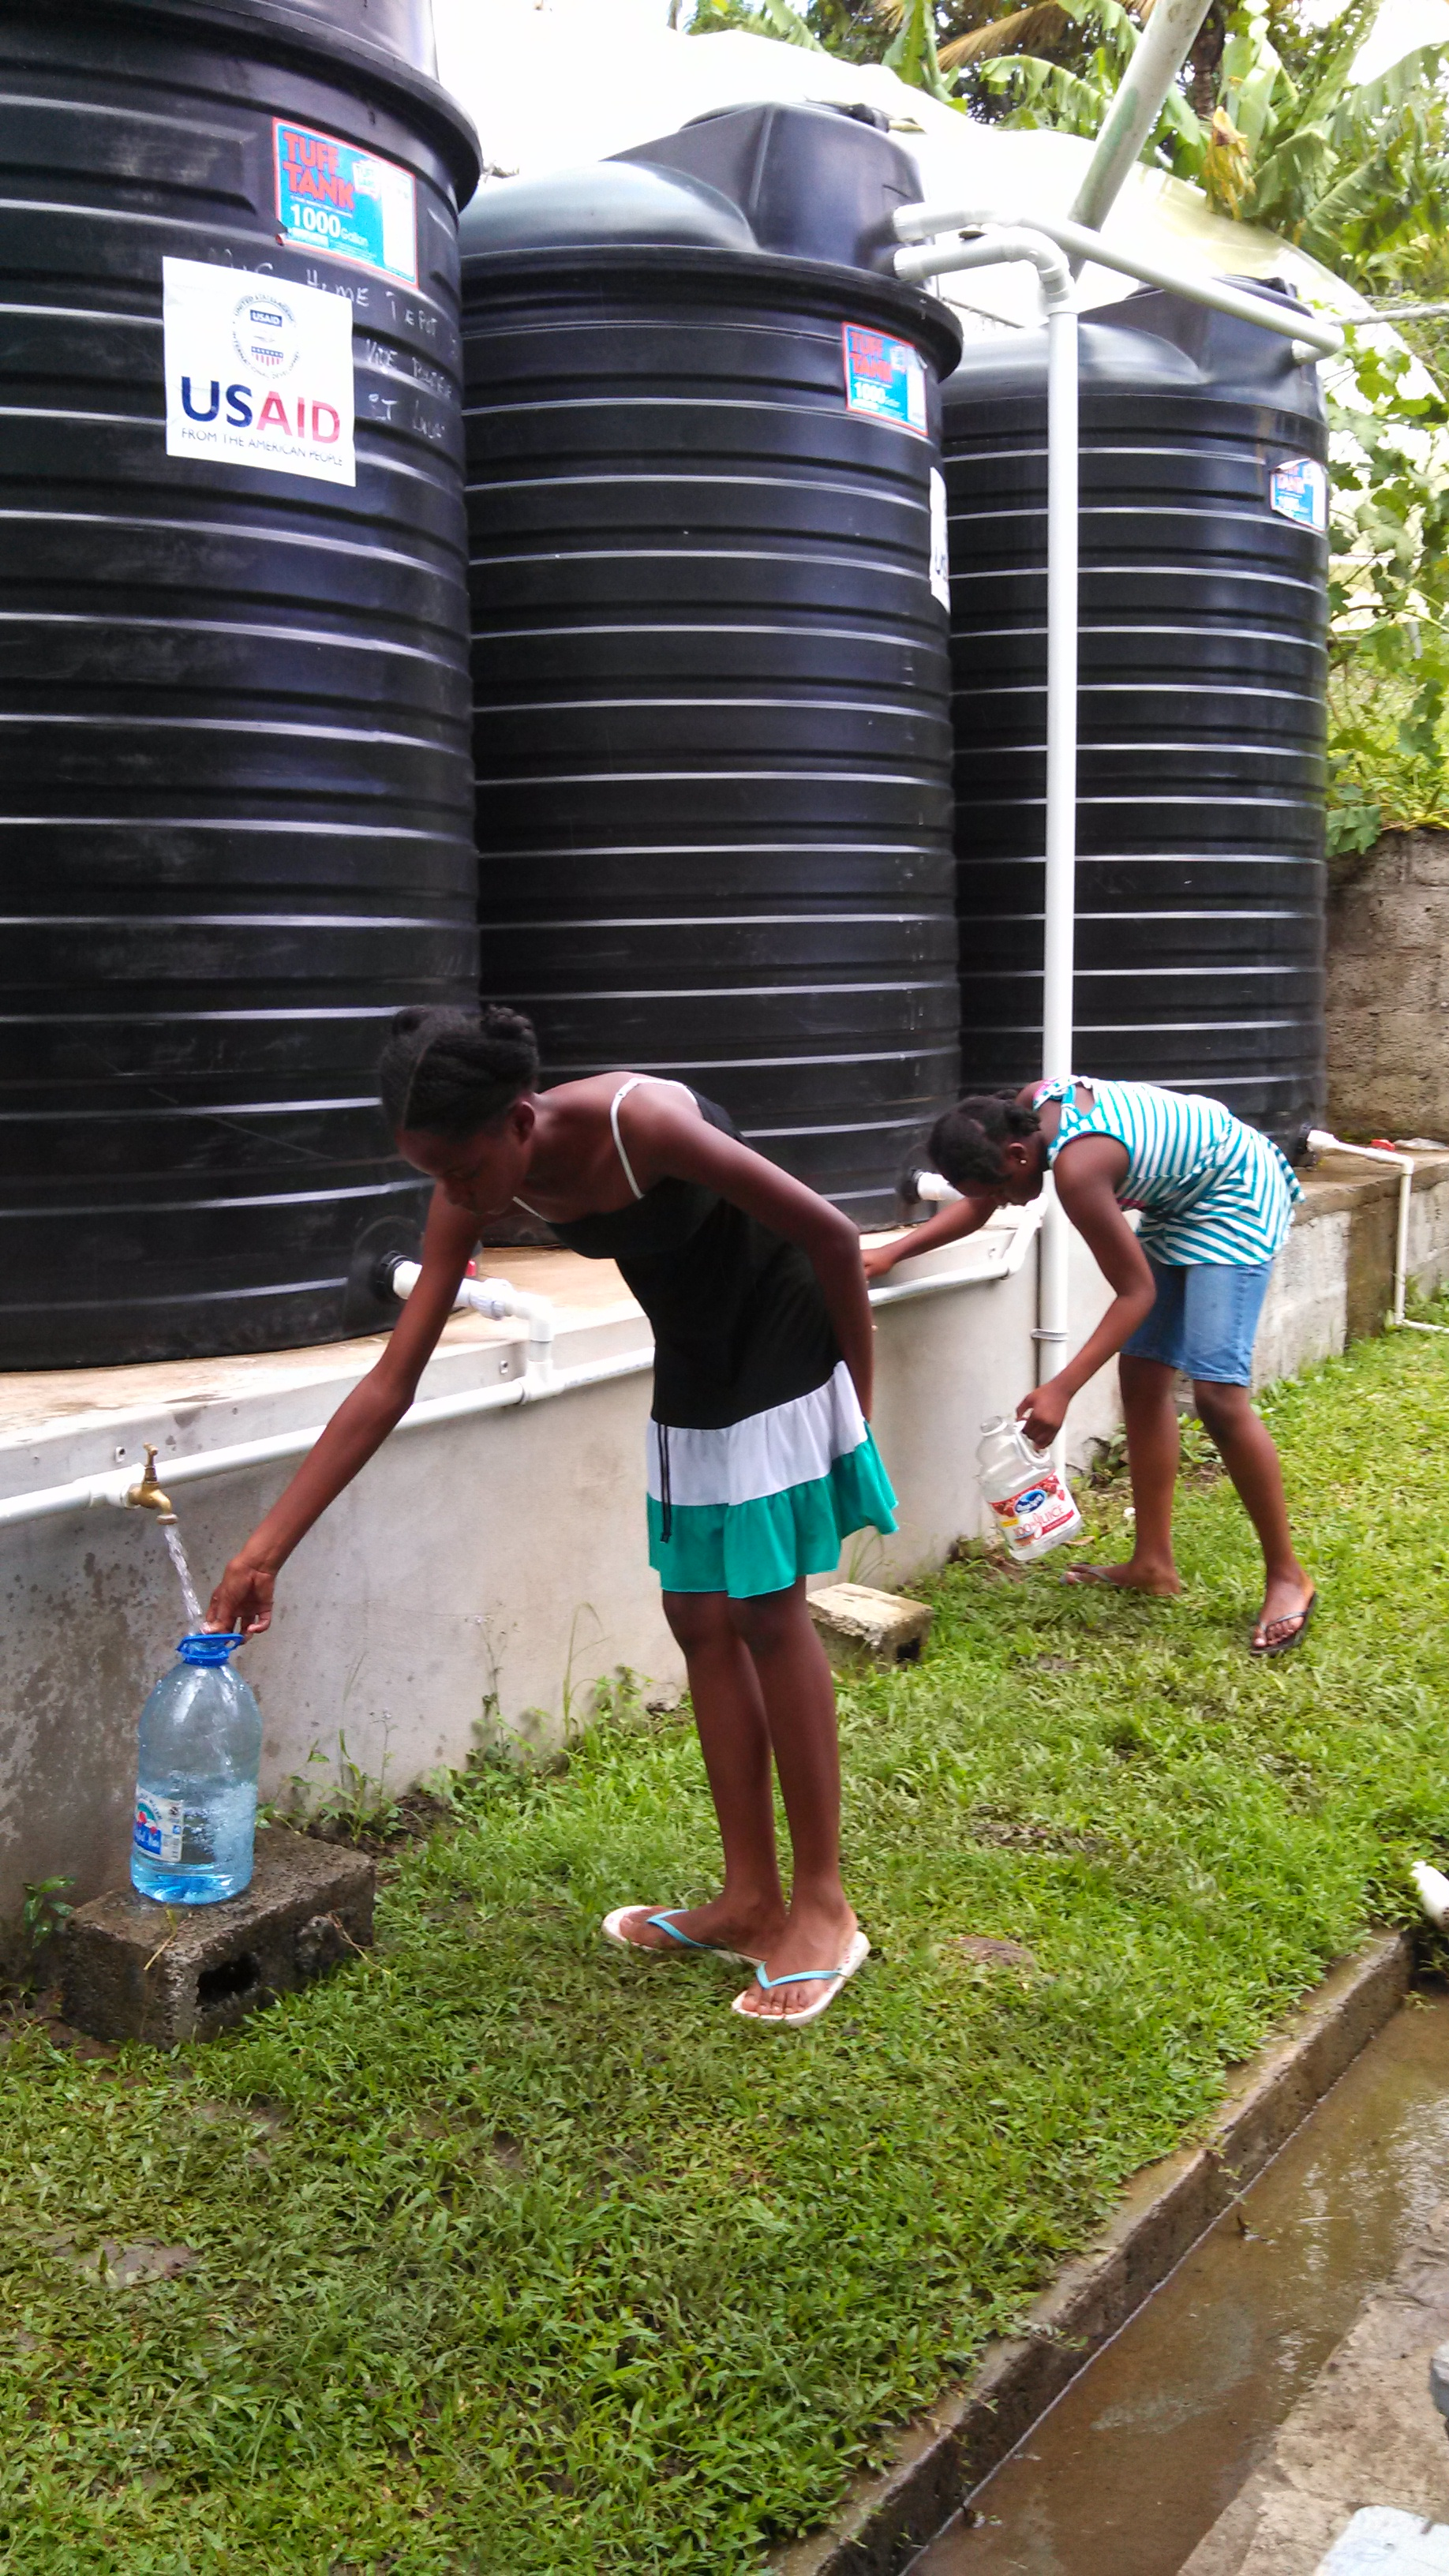 Girls in Laborie use water from storage tanks after a December 2013 storm disrupted regular water service. Photo courtesy of the Laborie Disaster Preparedness Committee.